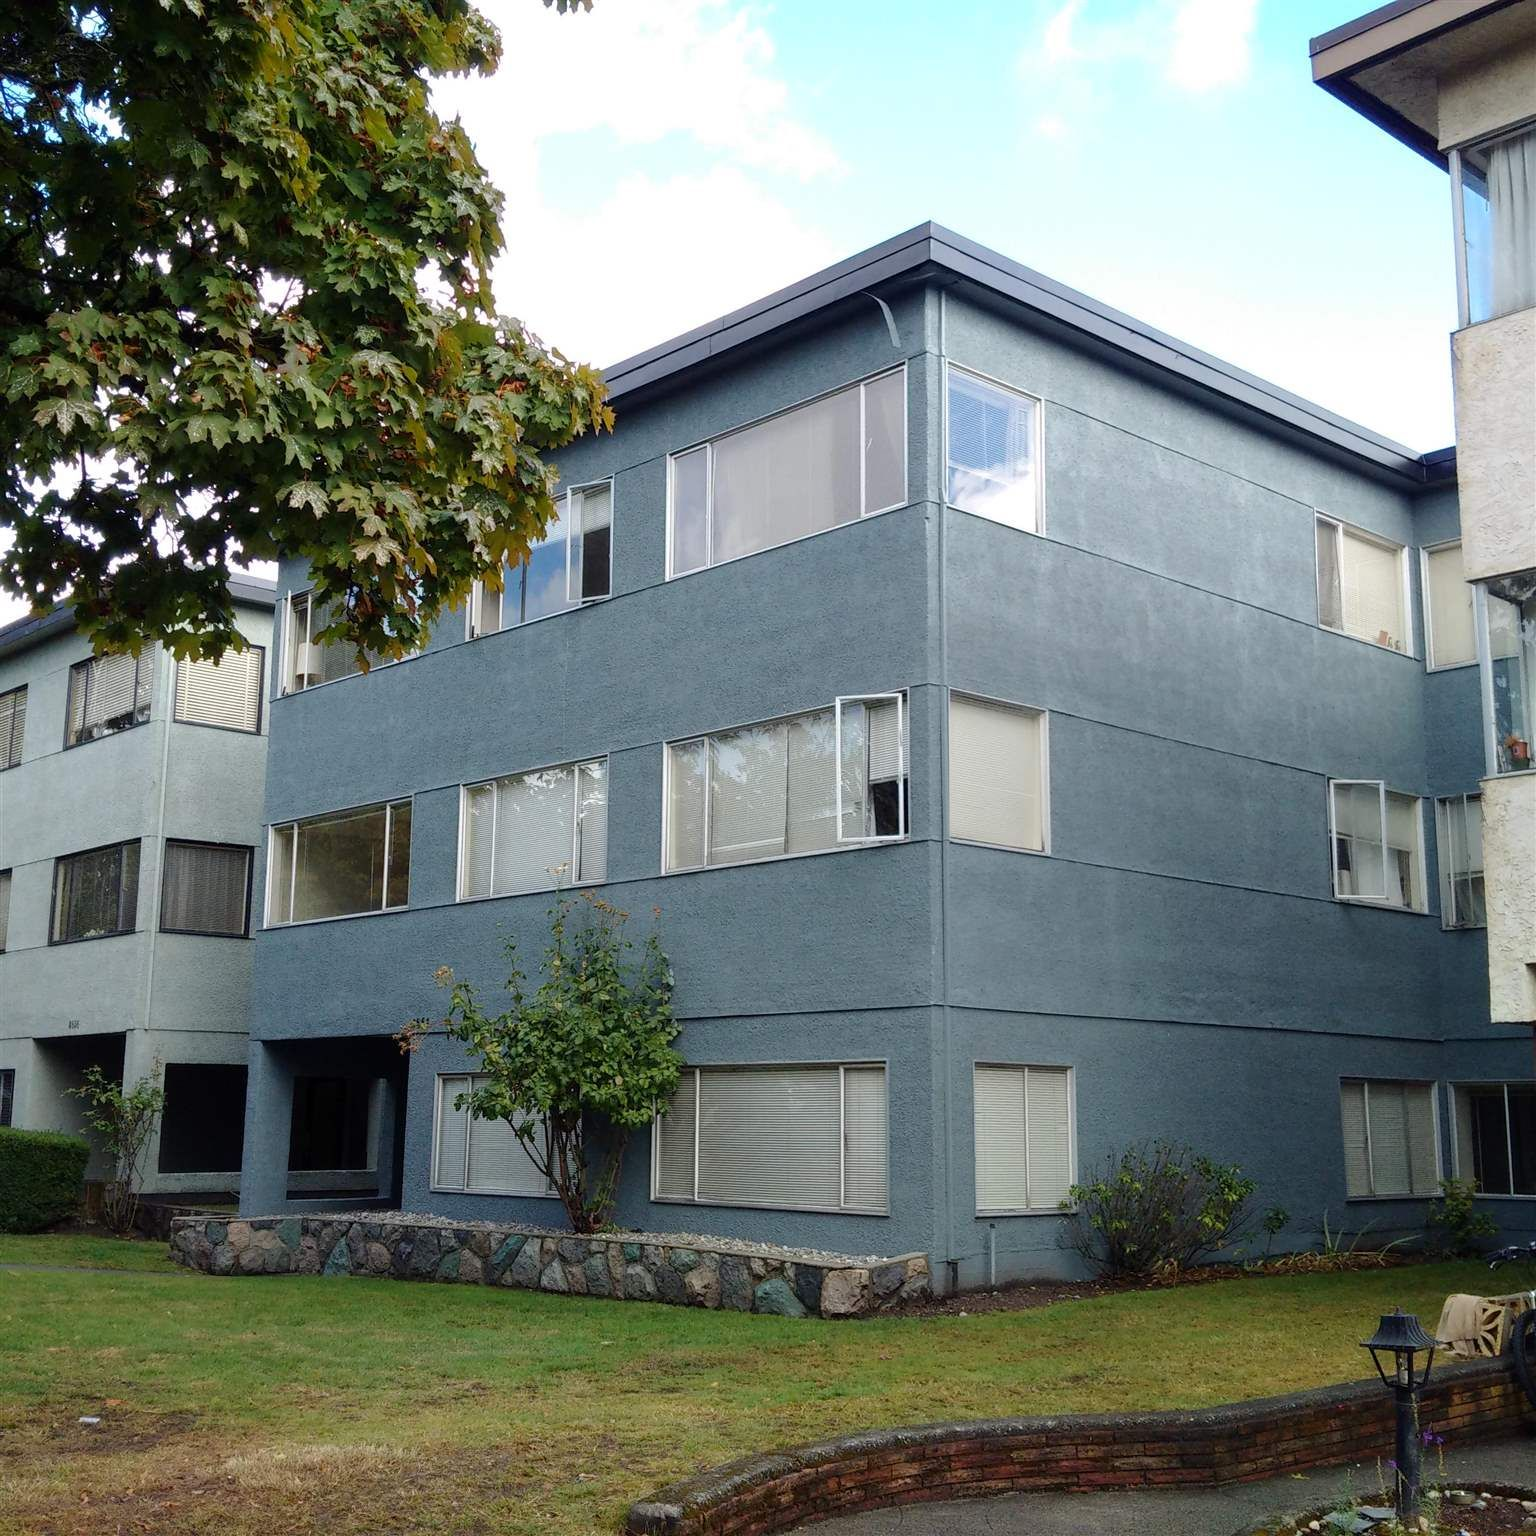 """Main Photo: 8668 MONTCALM Street in Vancouver: Marpole Multi-Family Commercial for sale in """"THE MONTCALM APARTMENTS"""" (Vancouver West)  : MLS®# C8039671"""